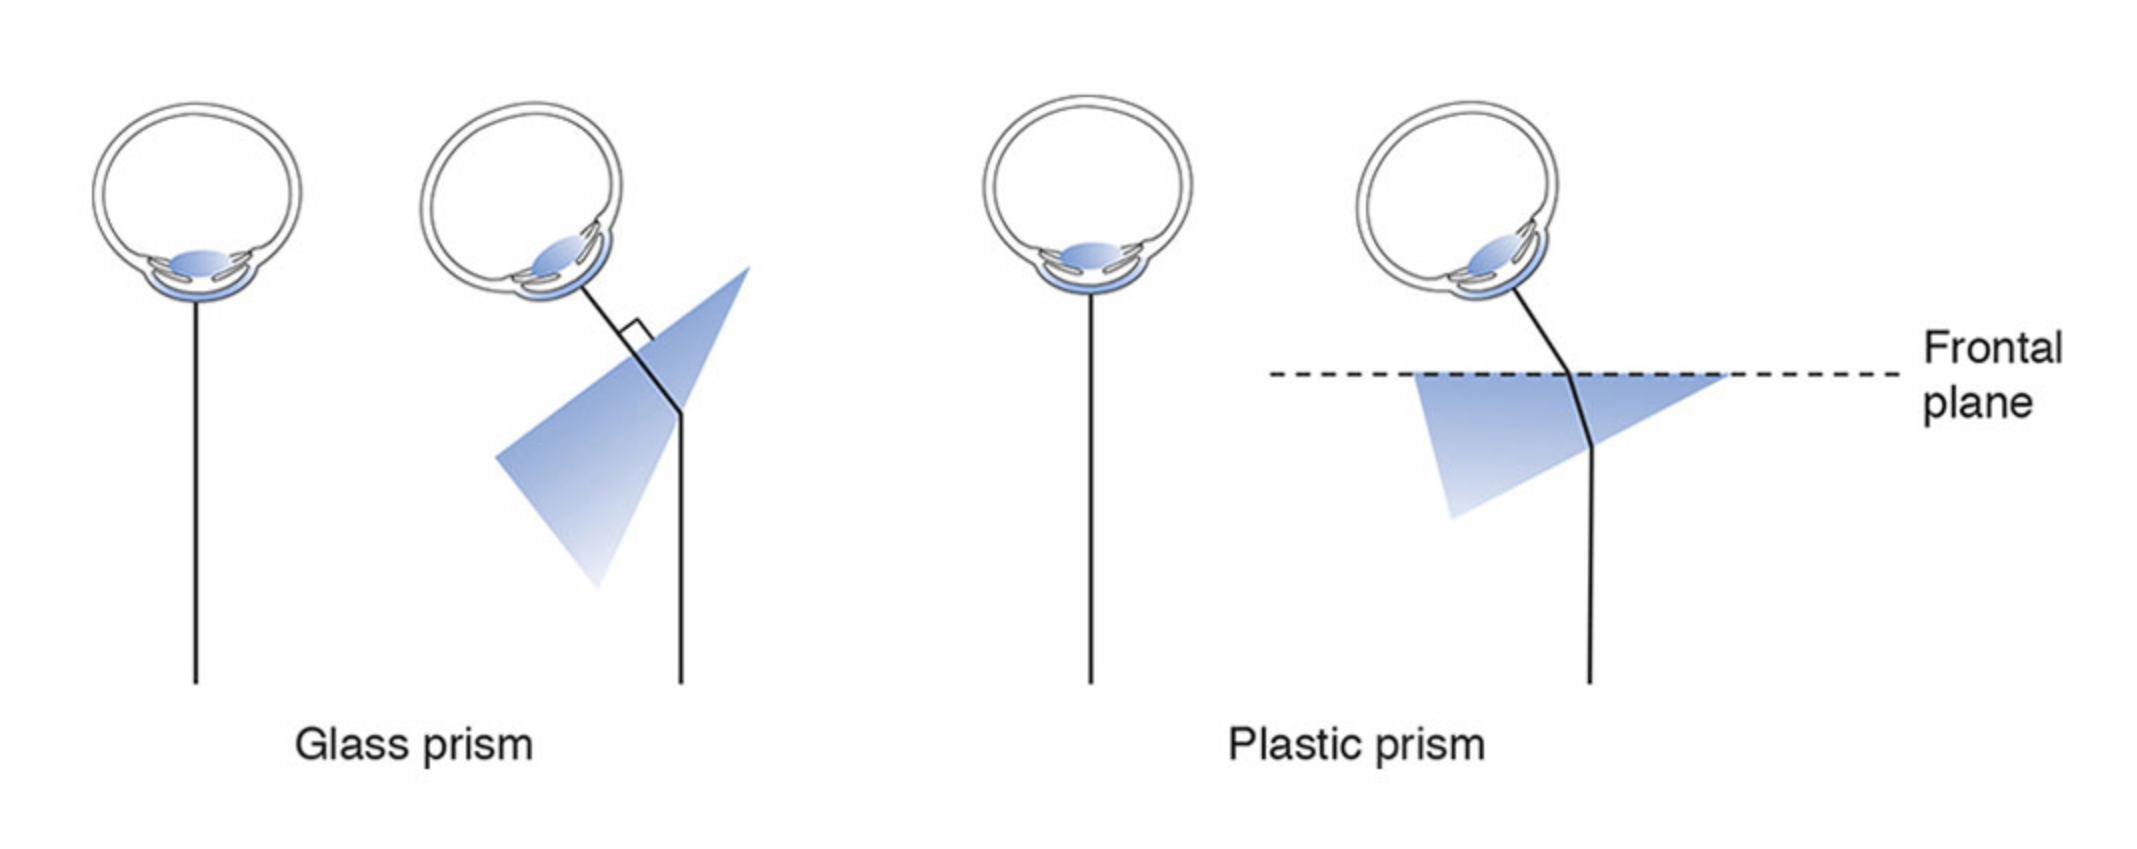 Correct positions for holding glass and plastic prisms.  Illustration developed by Edmond H. Thall, M.D., and Kevin M. Miller, M.D., and rendered by C. H. Wooley.  Image credit: American Academy of Ophthalmology. Used with permission.